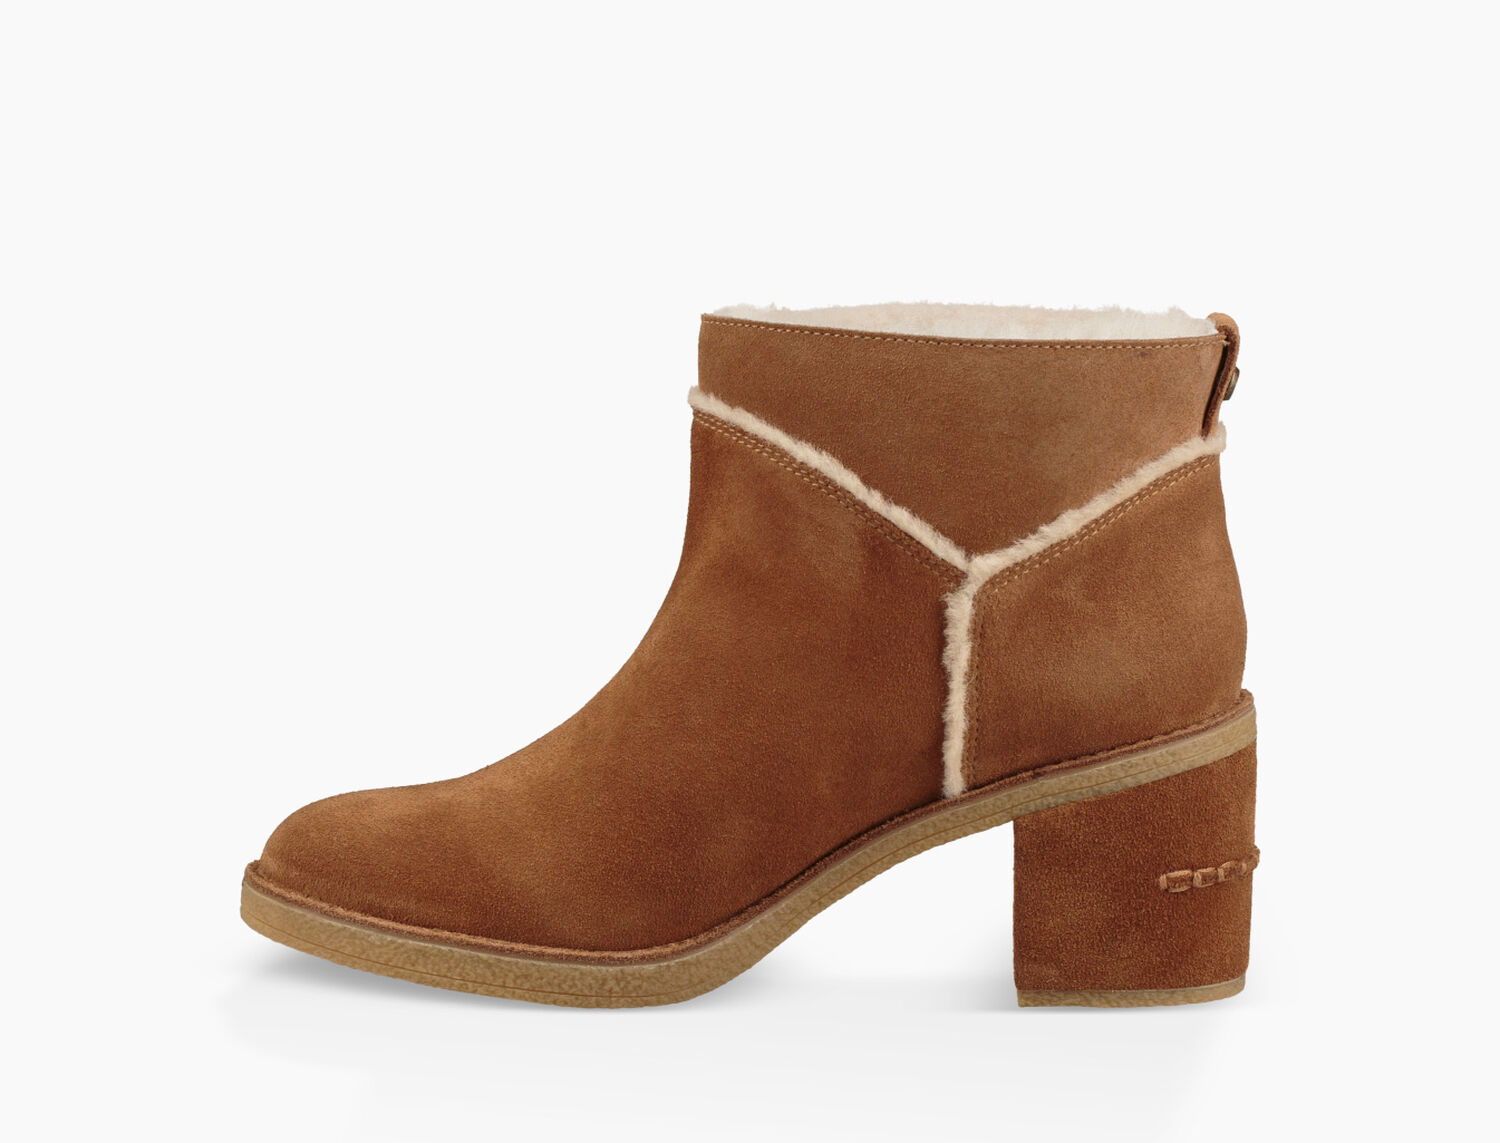 ab09f264464 Women's Share this product Kasen II Boot